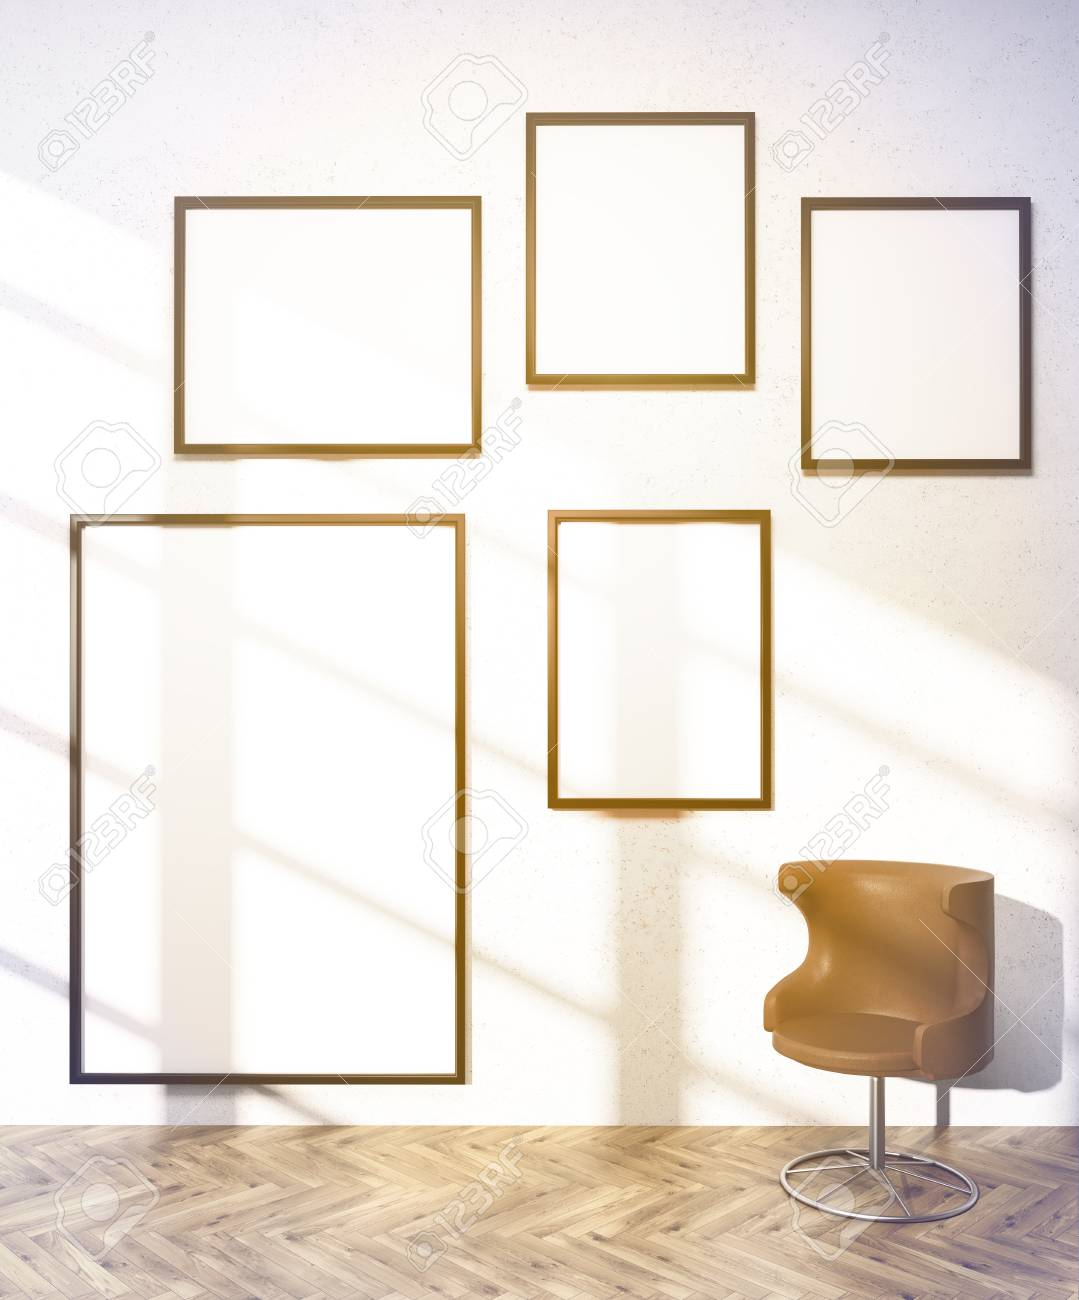 Five Frames Of Different Sizes On White Wall, Brown Armchair ...